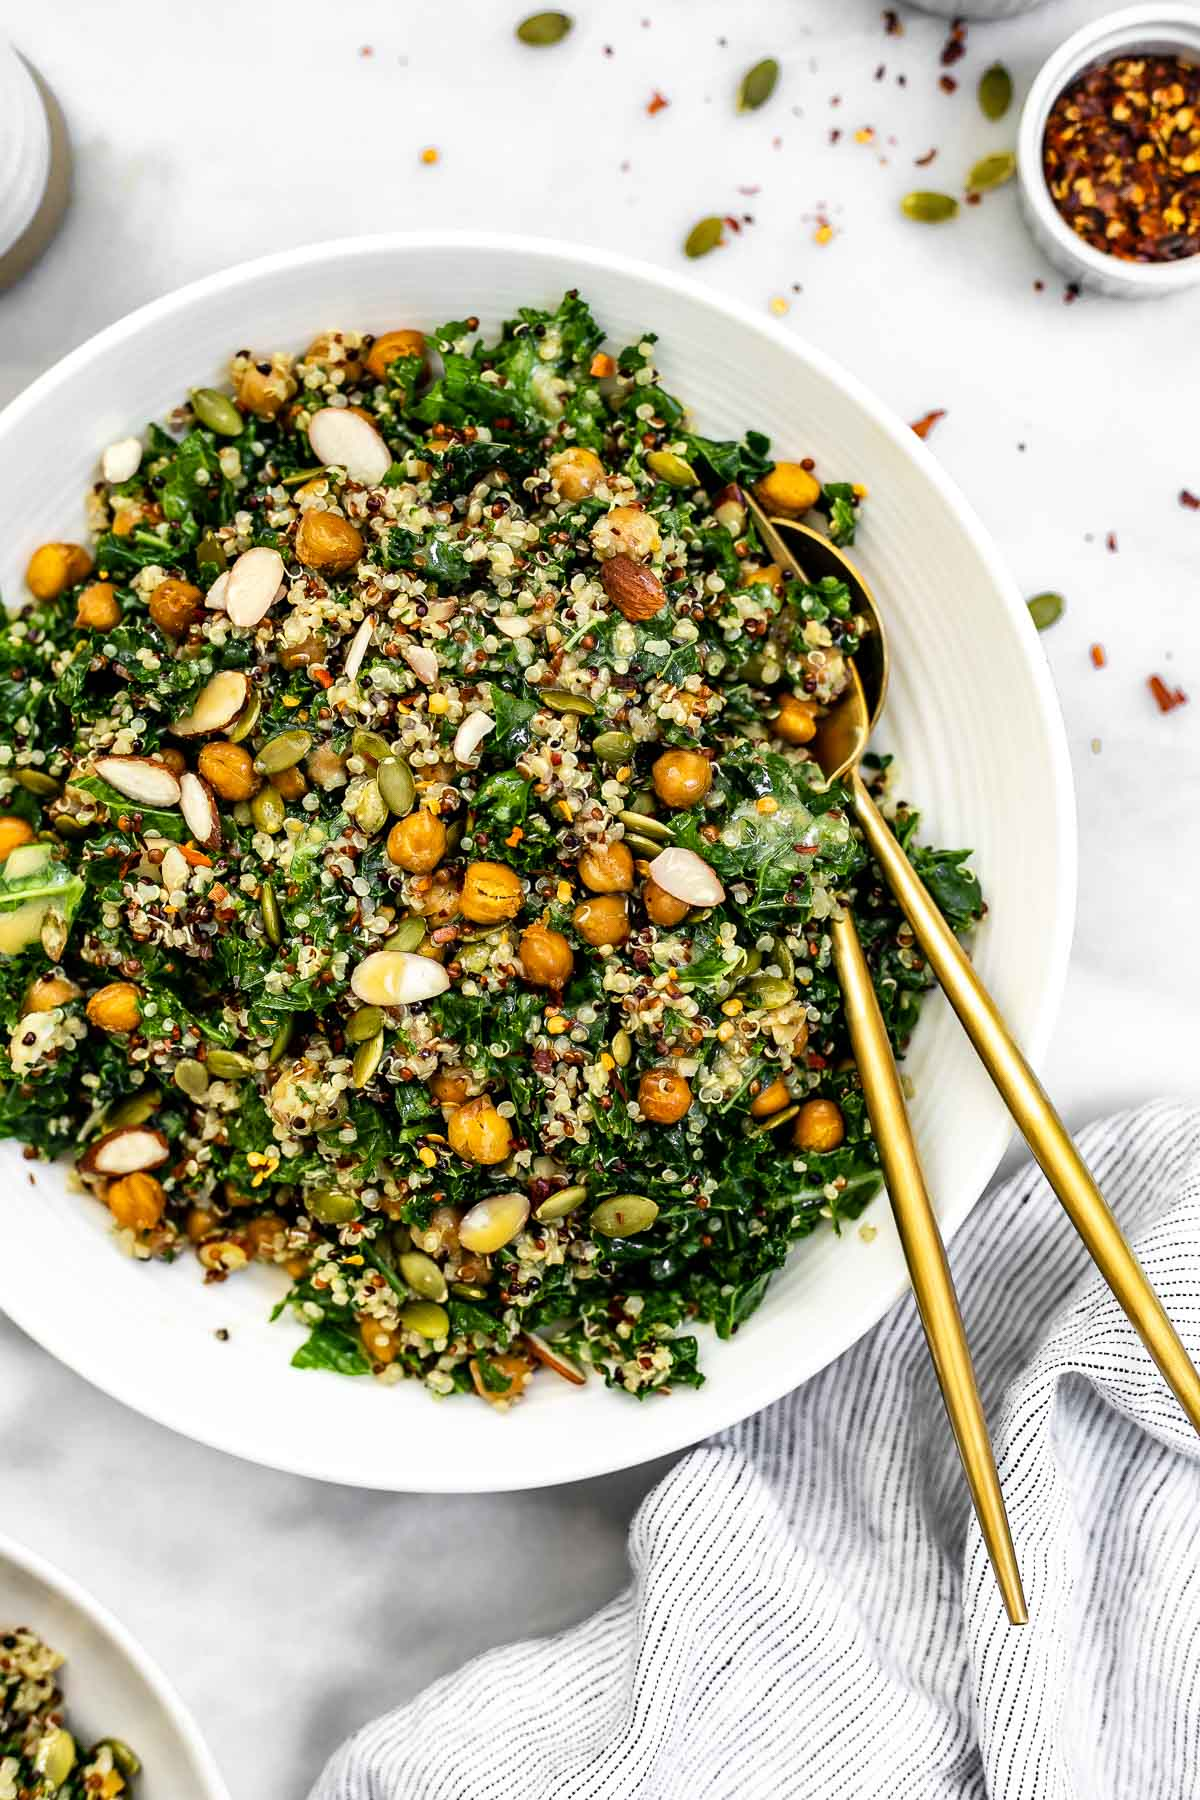 Kale quinoa salad with crispy garlic chickpeas in a white bowl.